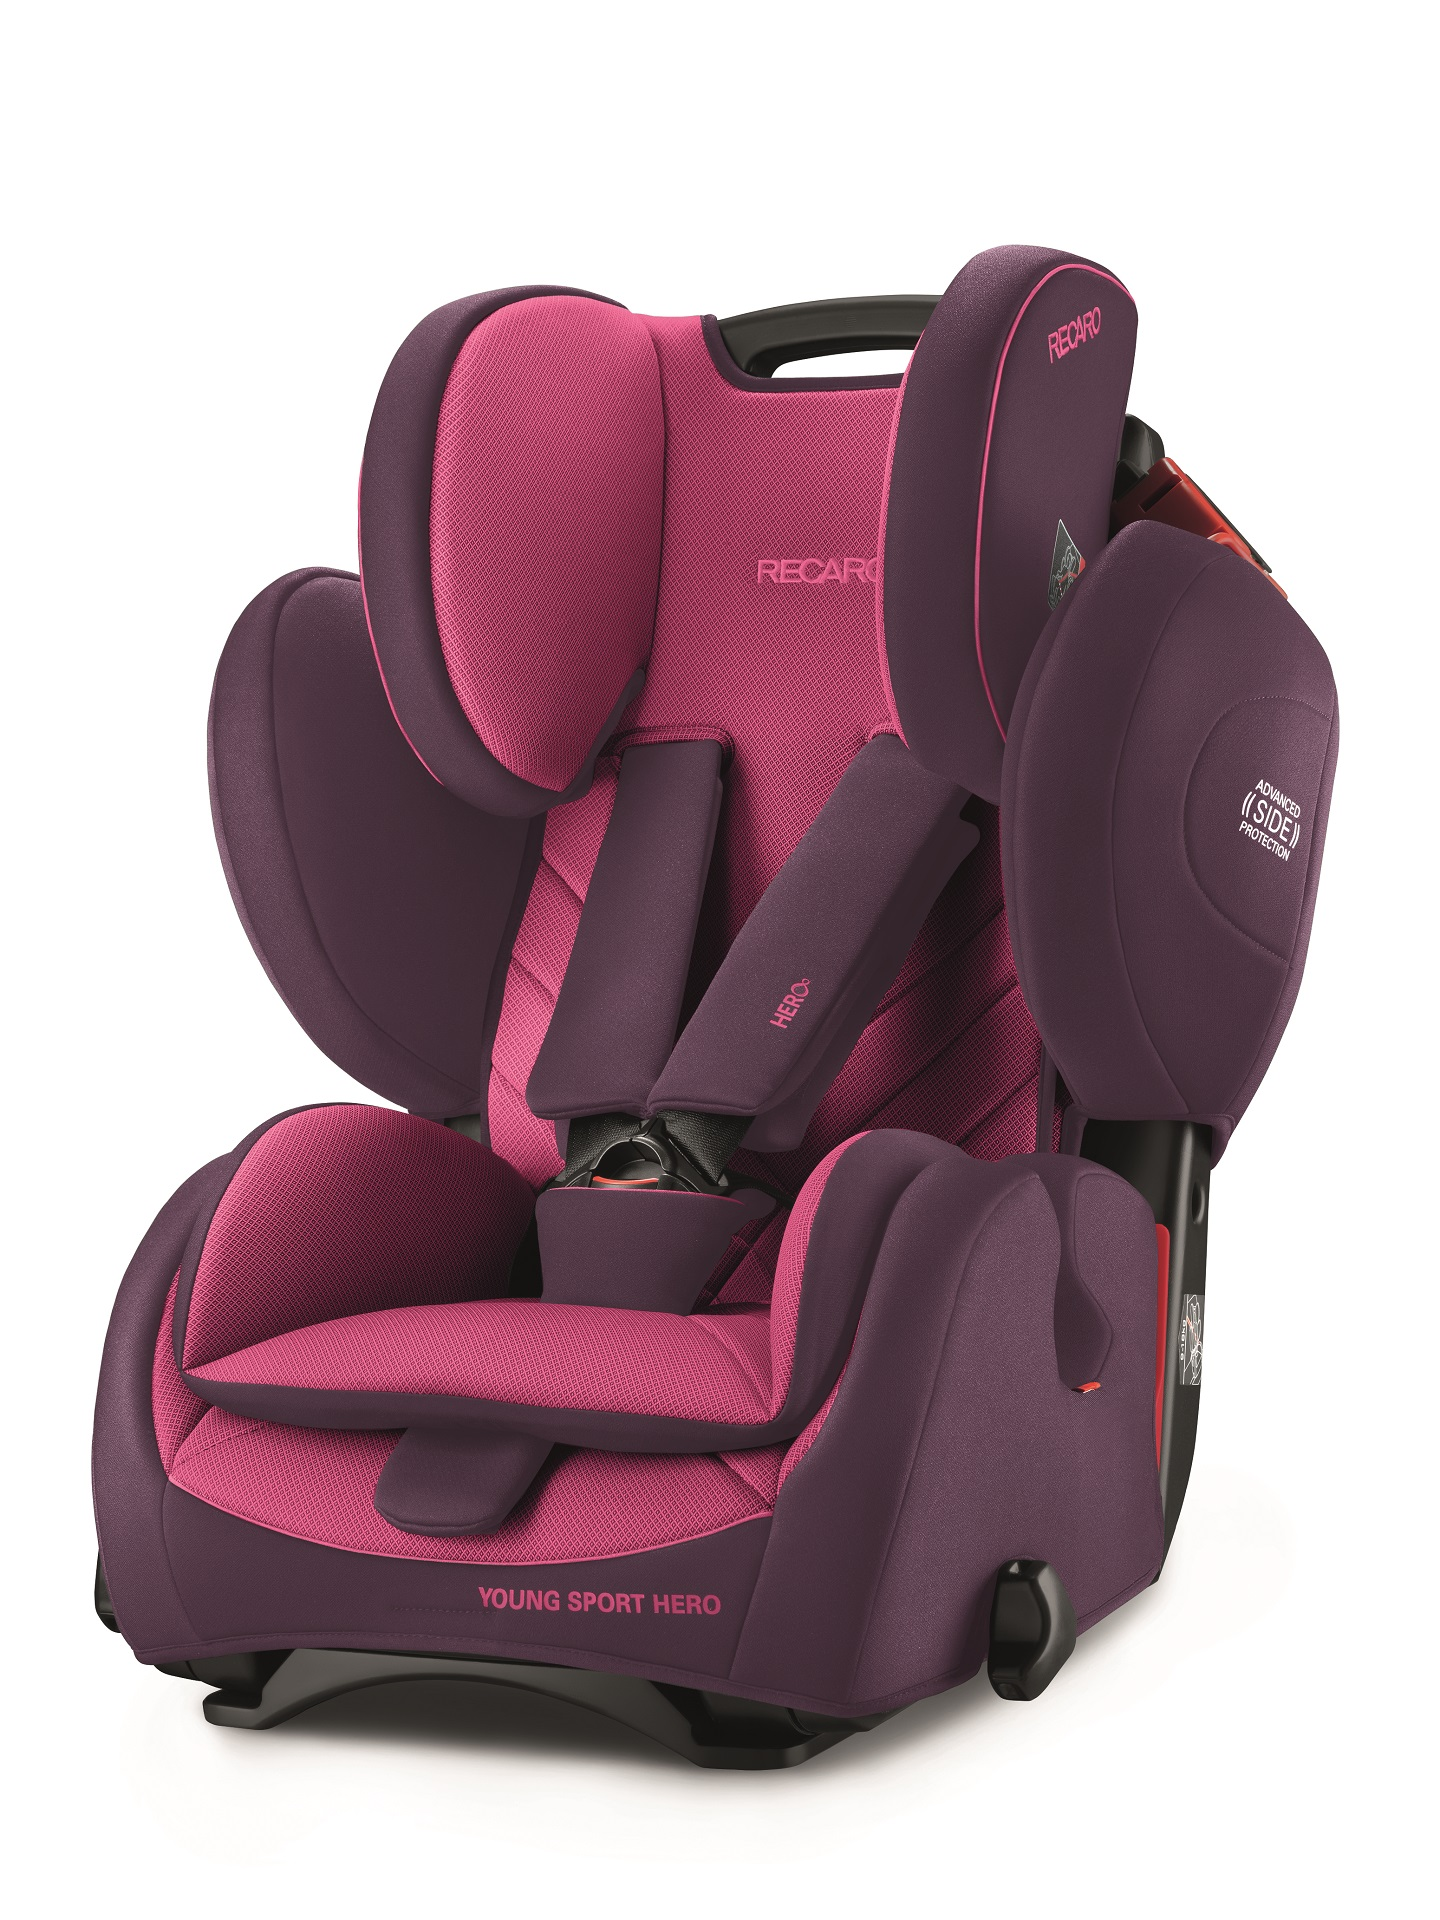 Recaro Child Car Seat Young Sport Hero Power Berry 2018